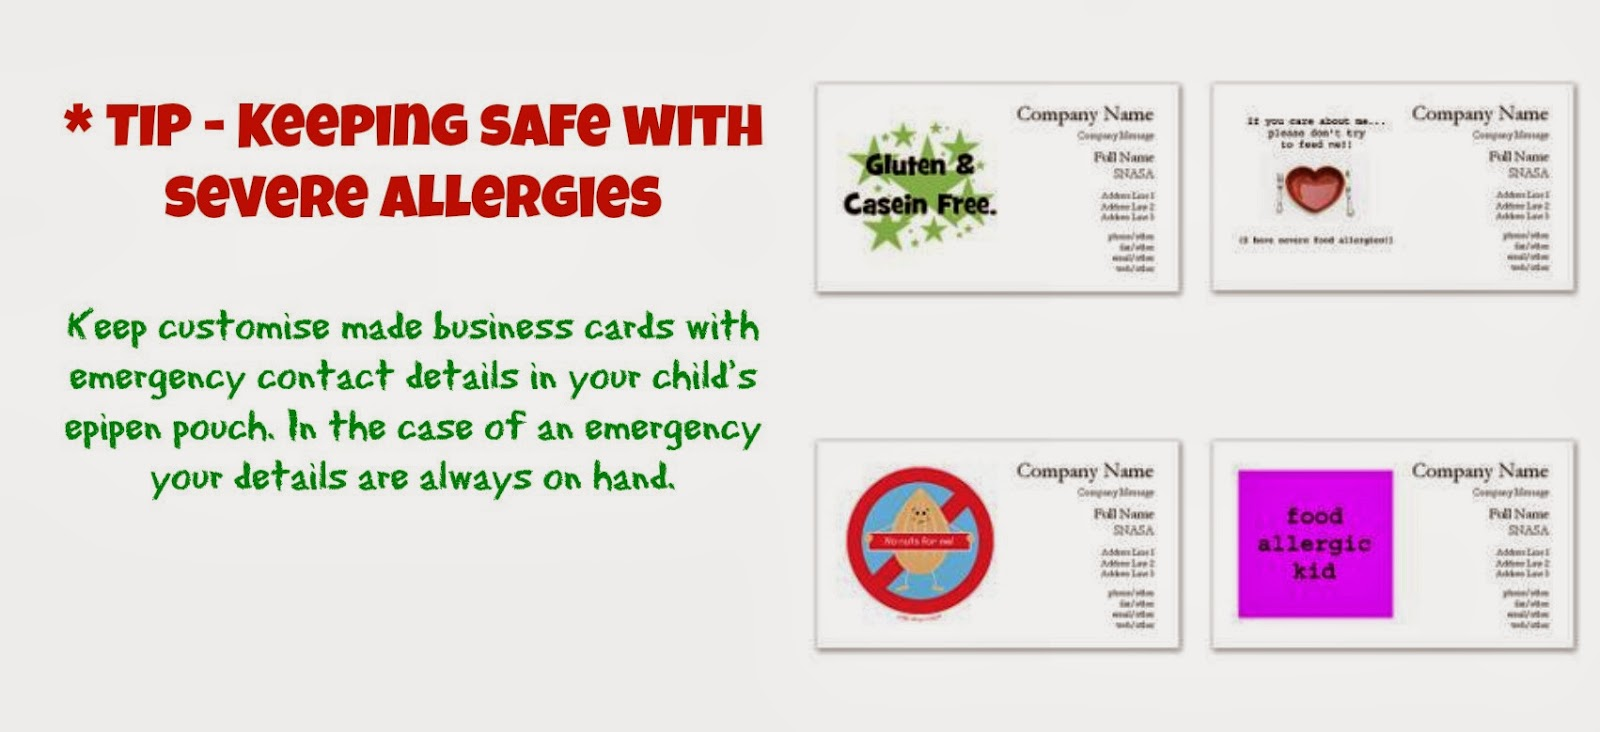 http://www.cafepress.com.au/+food-allergy-alert+business-cards?aid=78986732